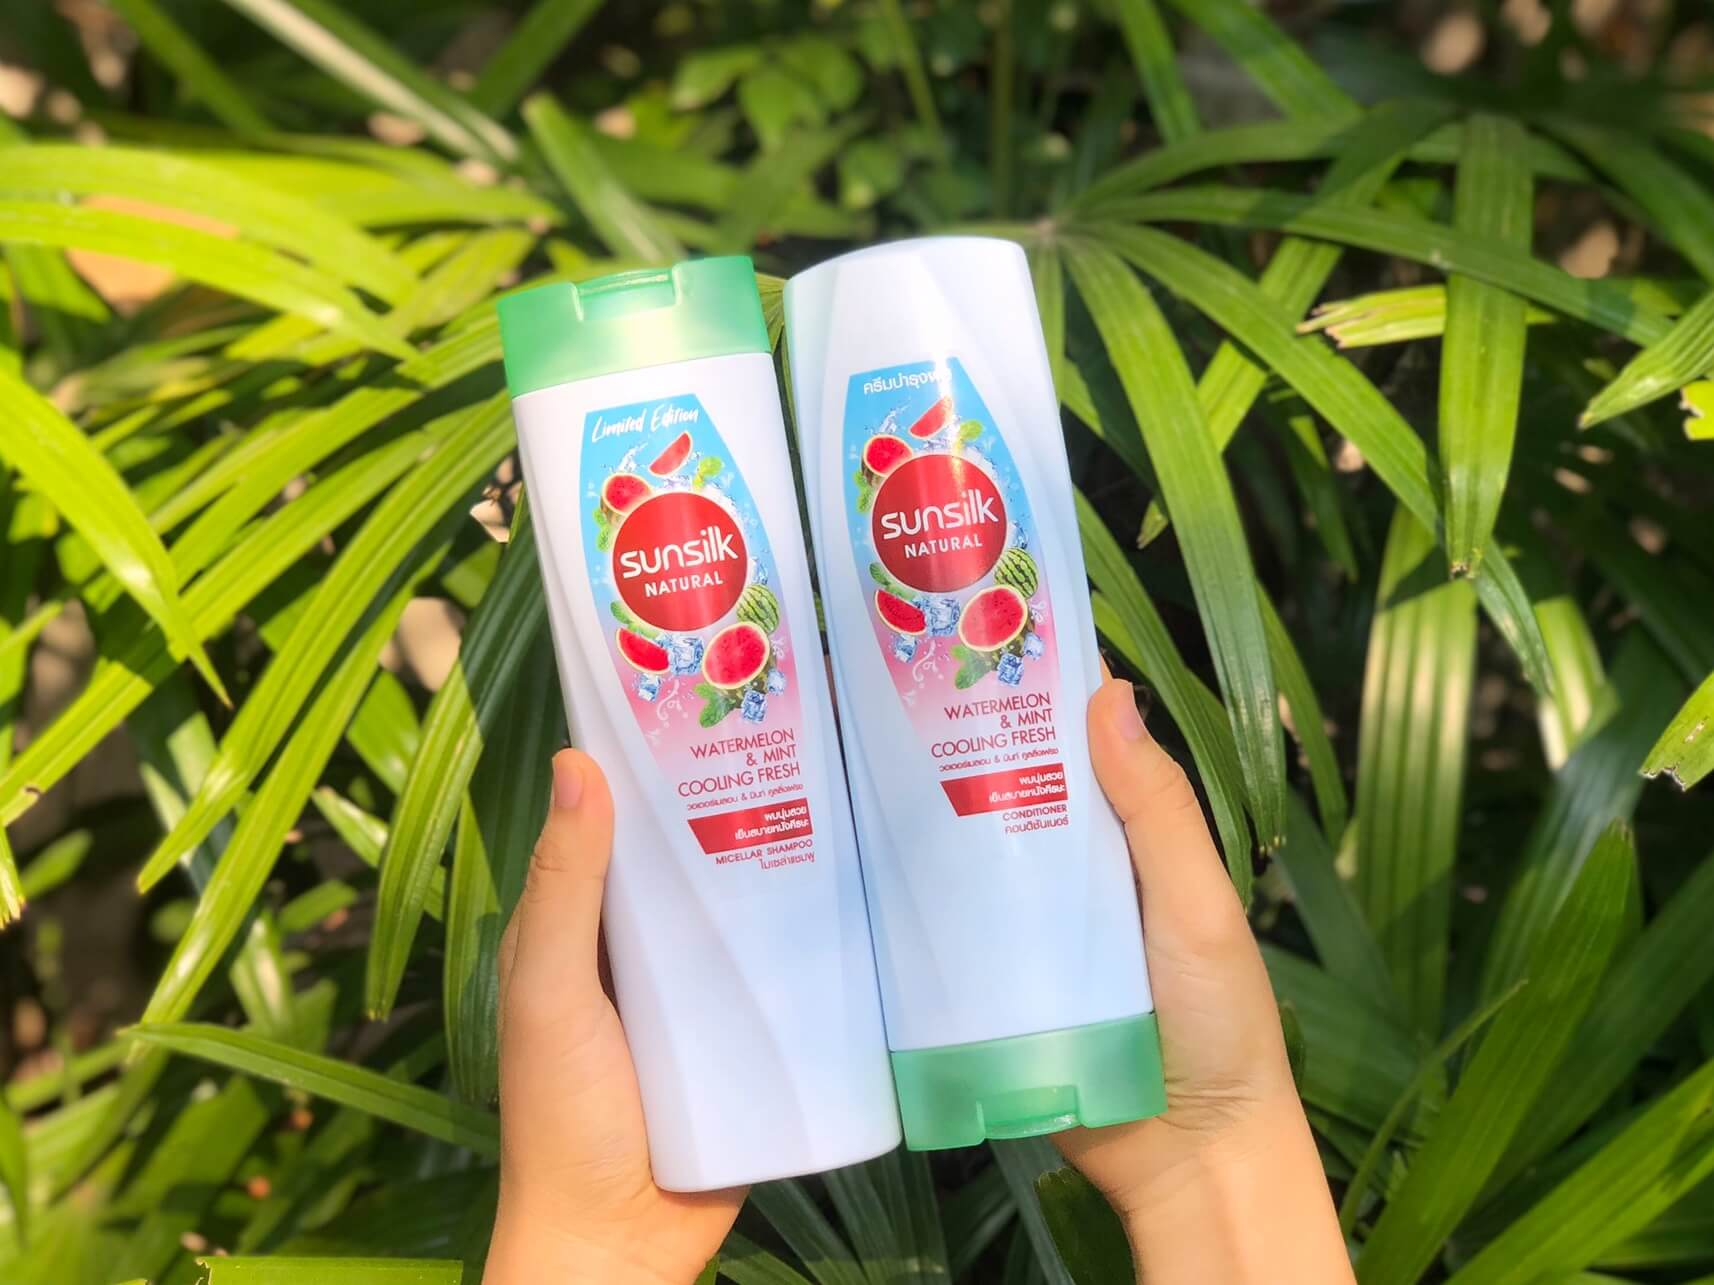 Sunsilk Natural Watermelon & Mint Cooling Fresh